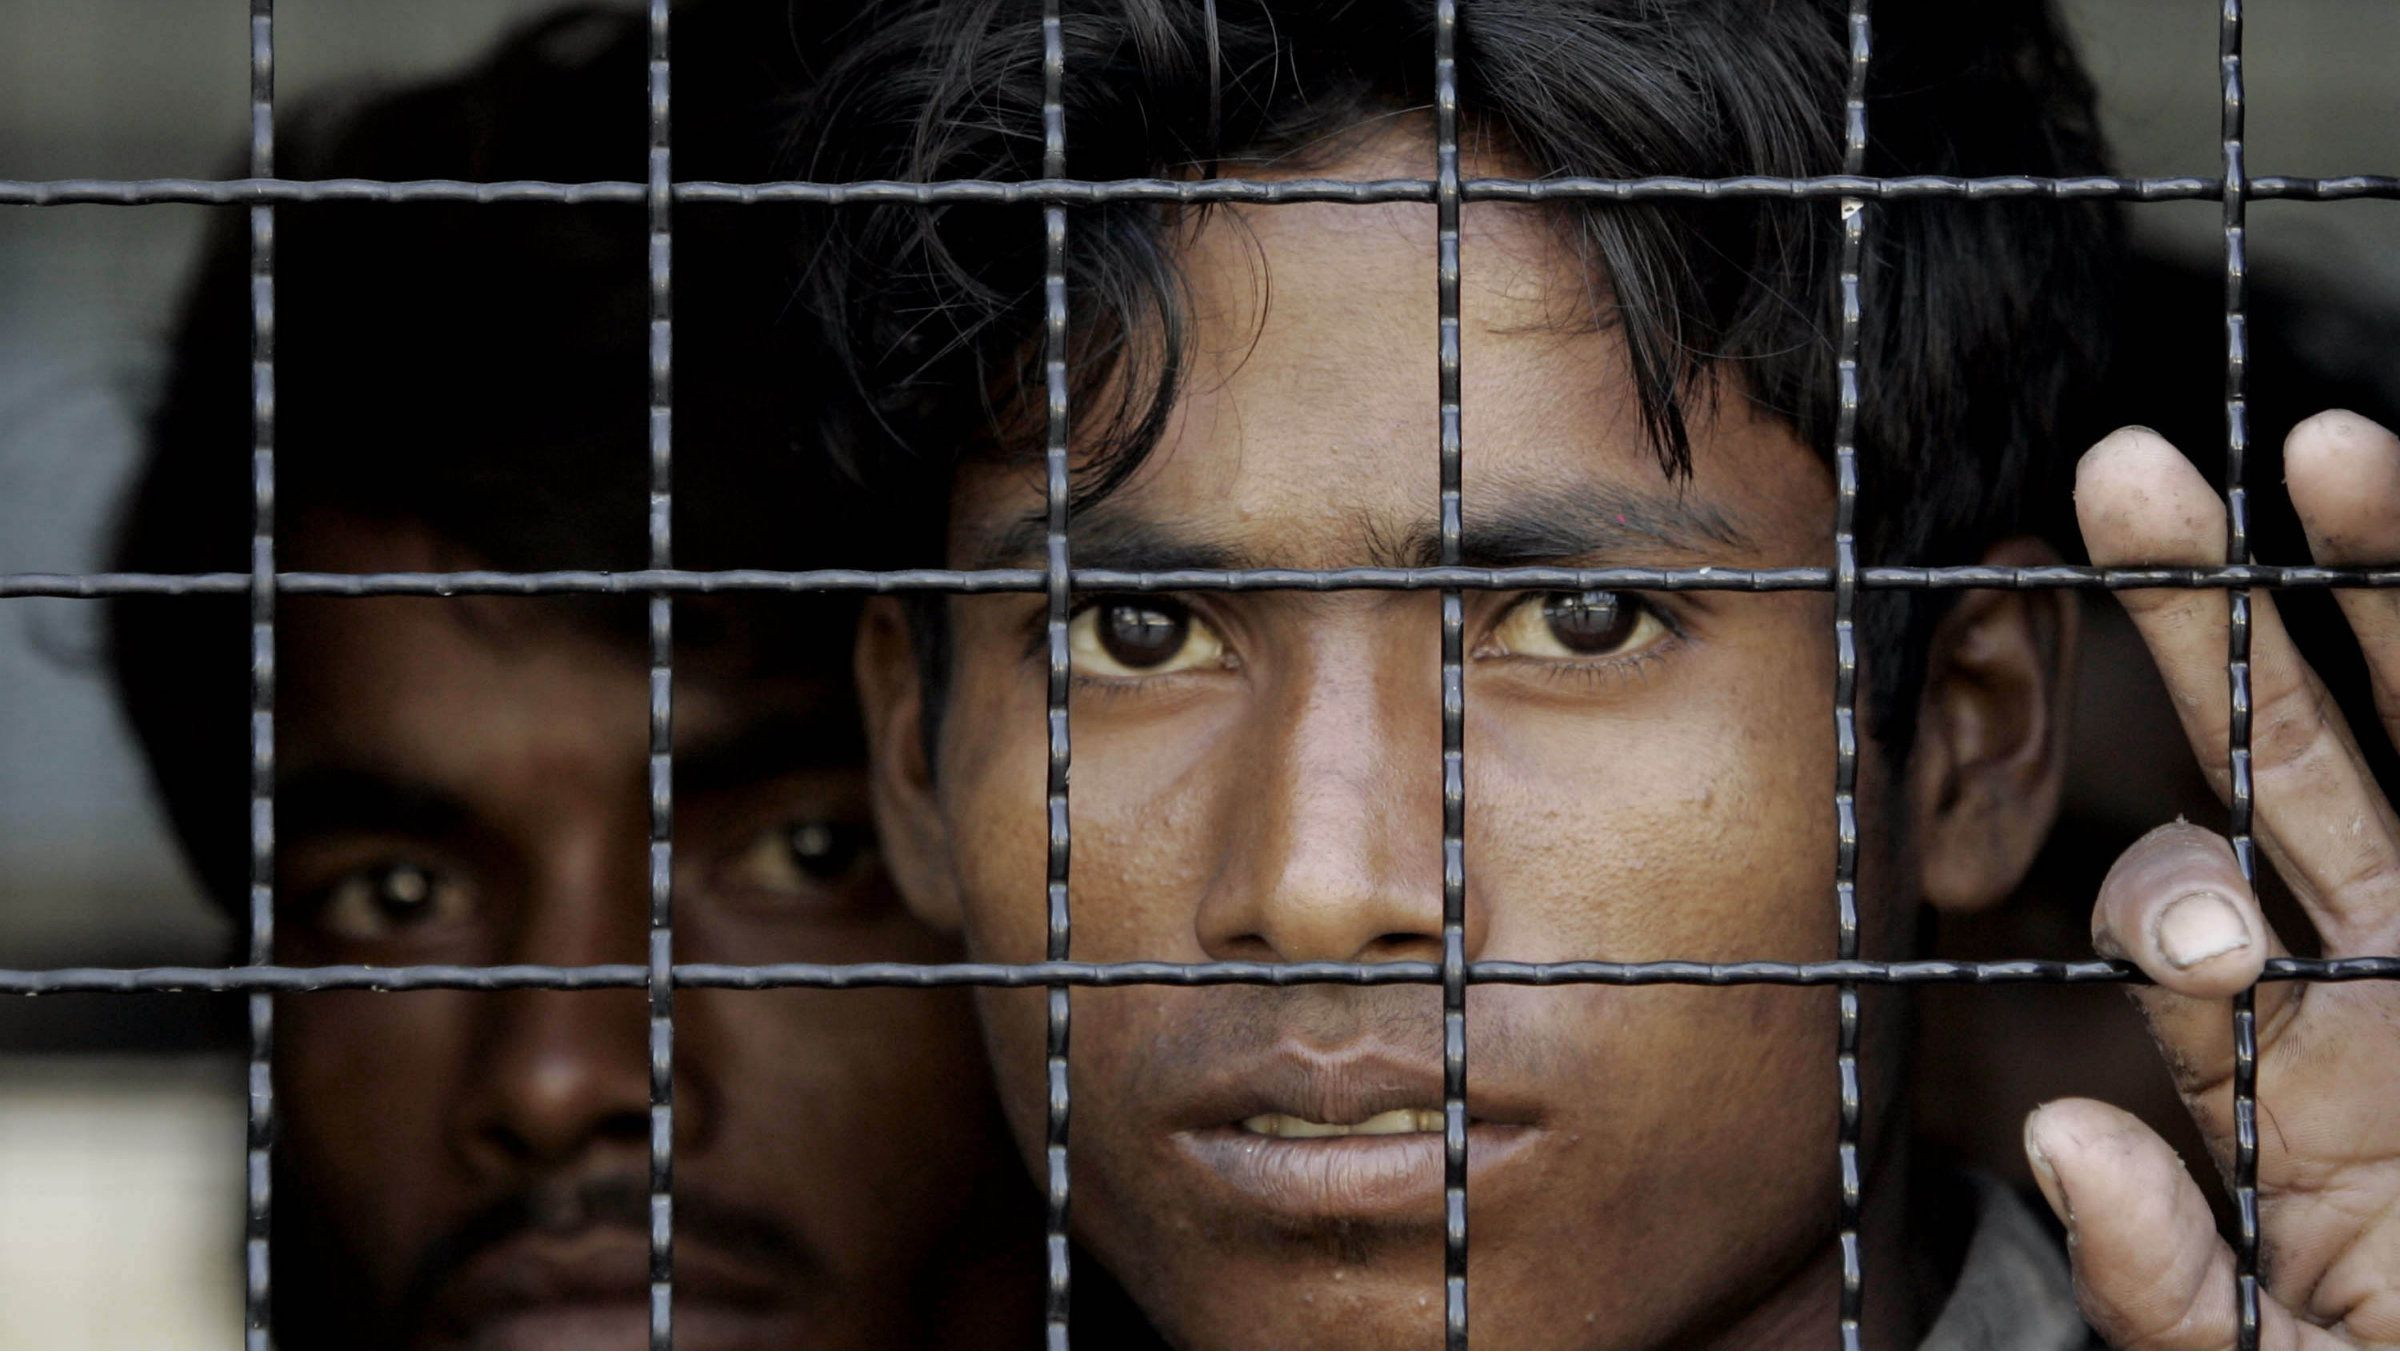 Rohingya migrants look out from the window of a Thai police van in 2009.